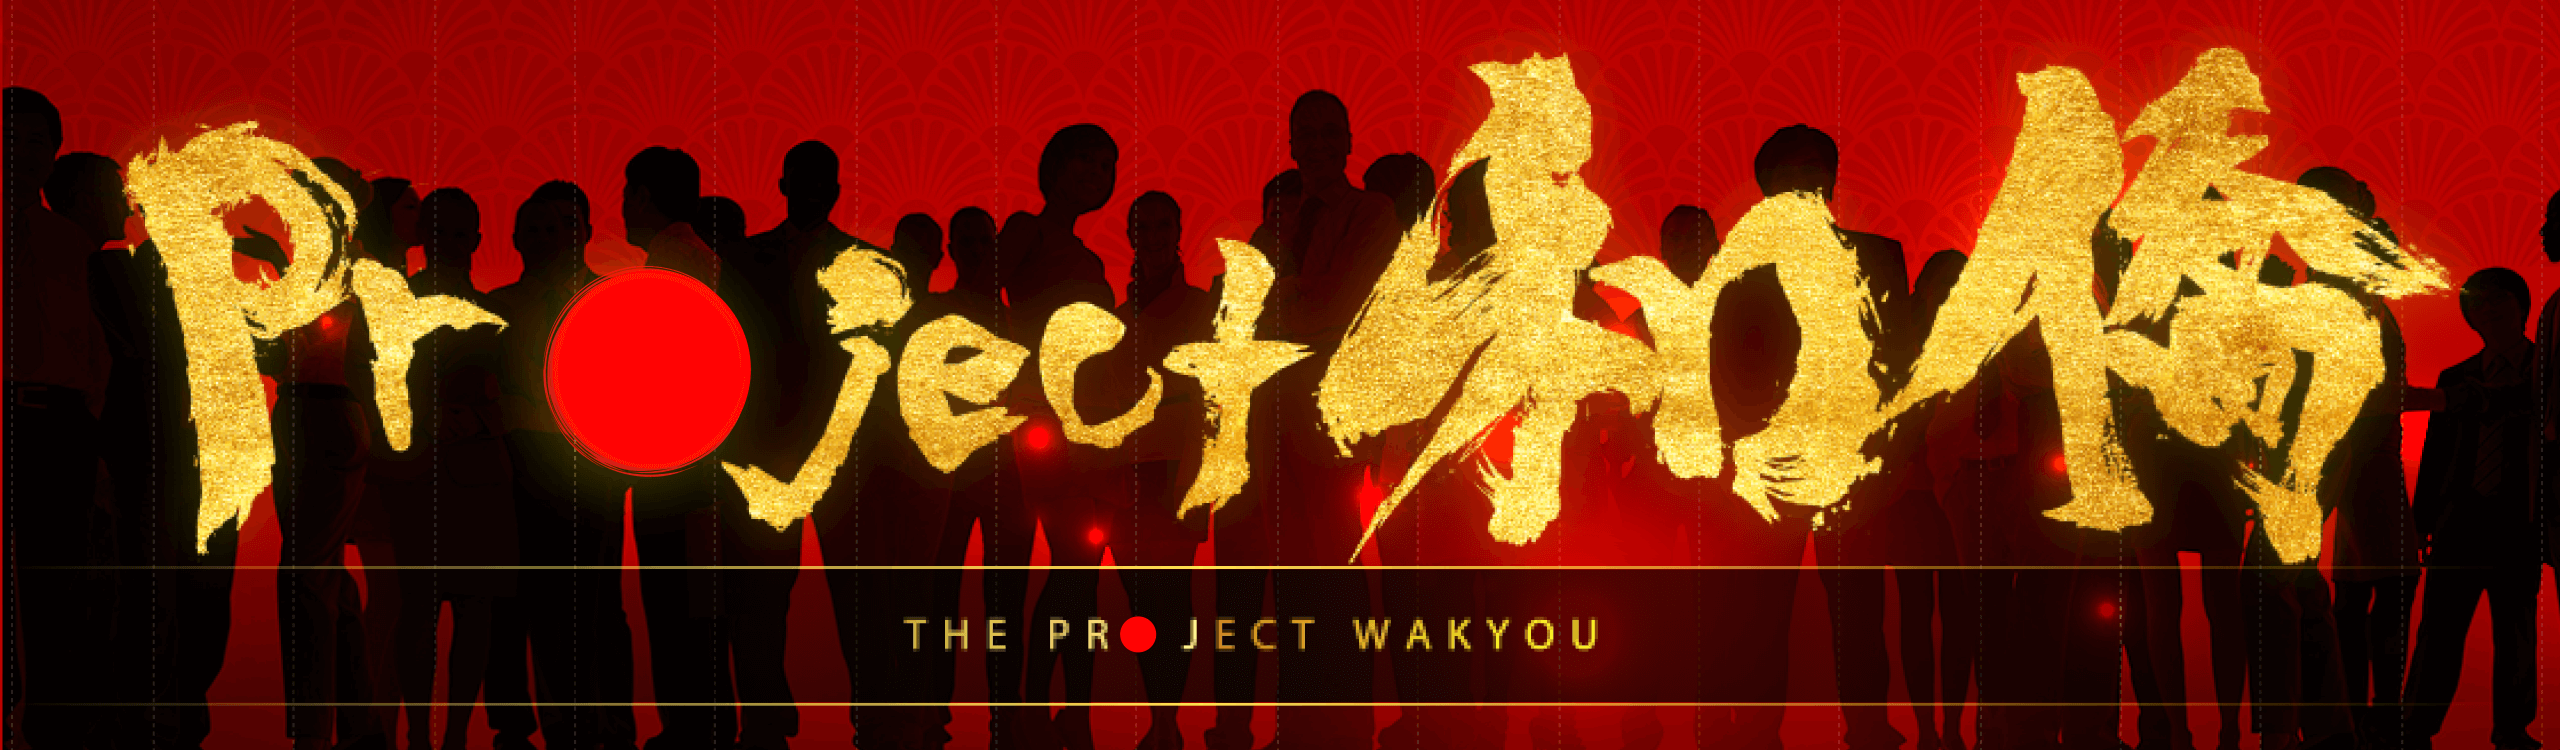 Project和僑